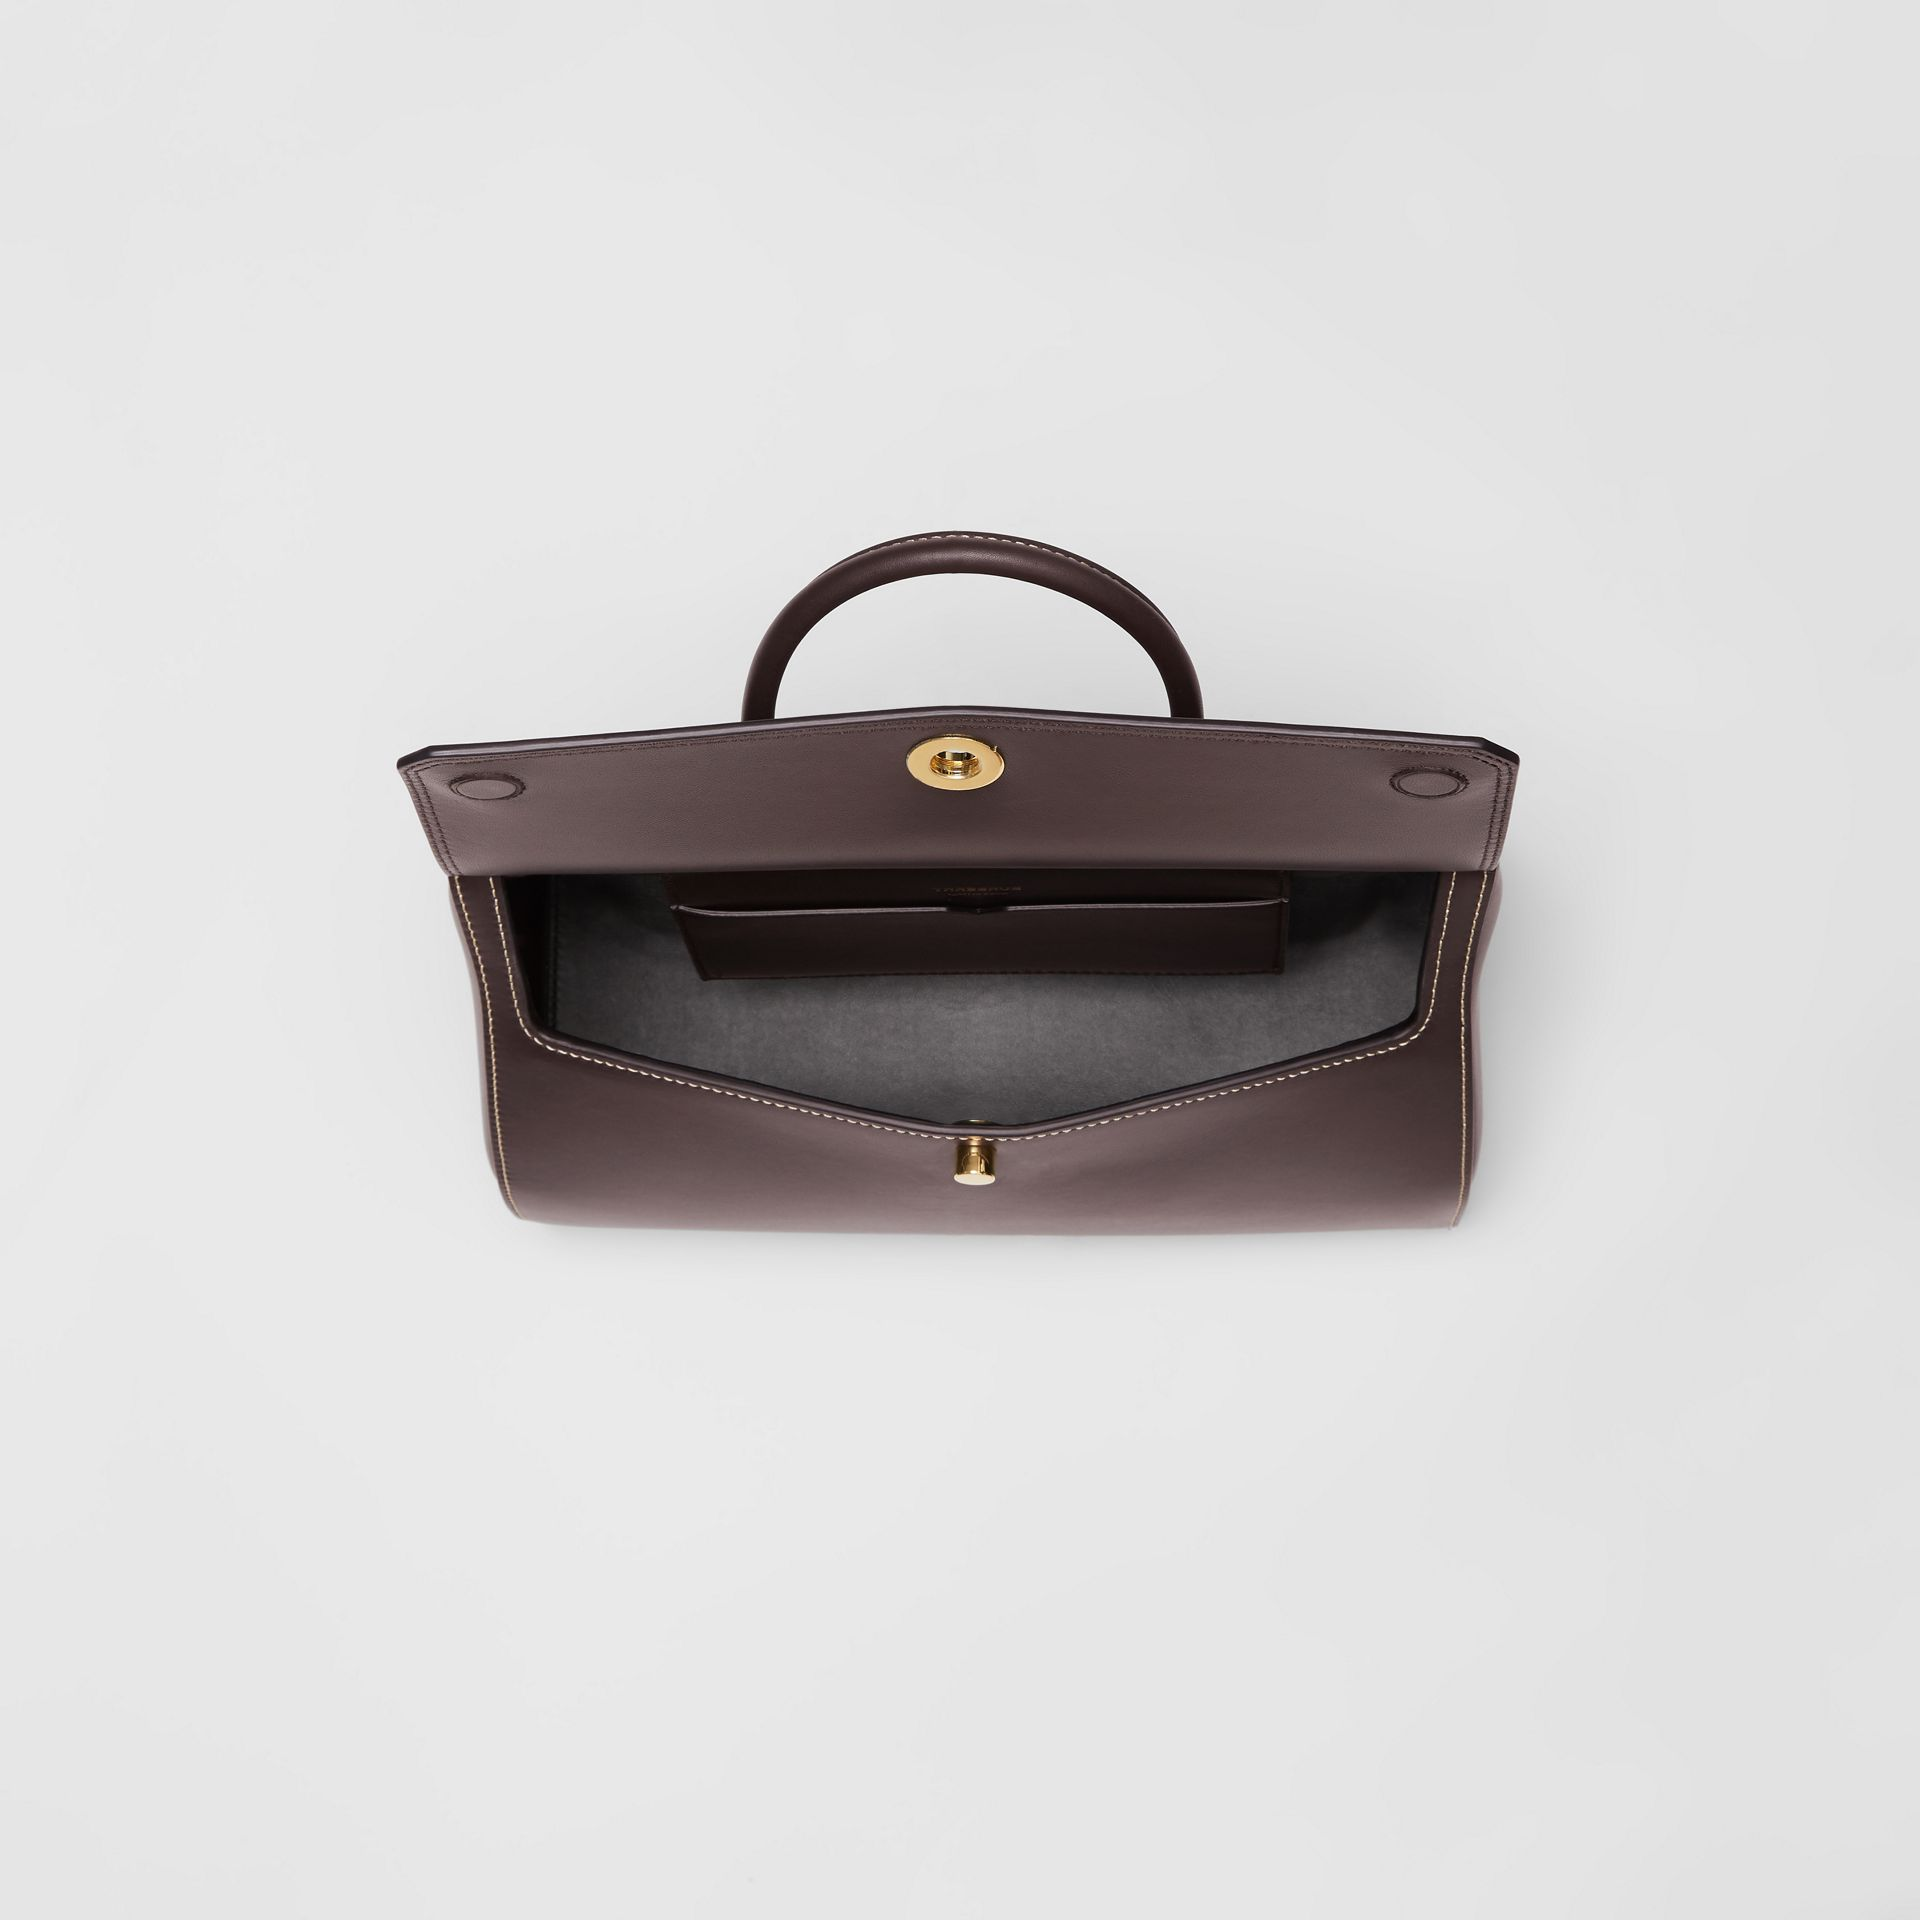 Small Leather Elizabeth Bag in Coffee - Women | Burberry Australia - gallery image 3